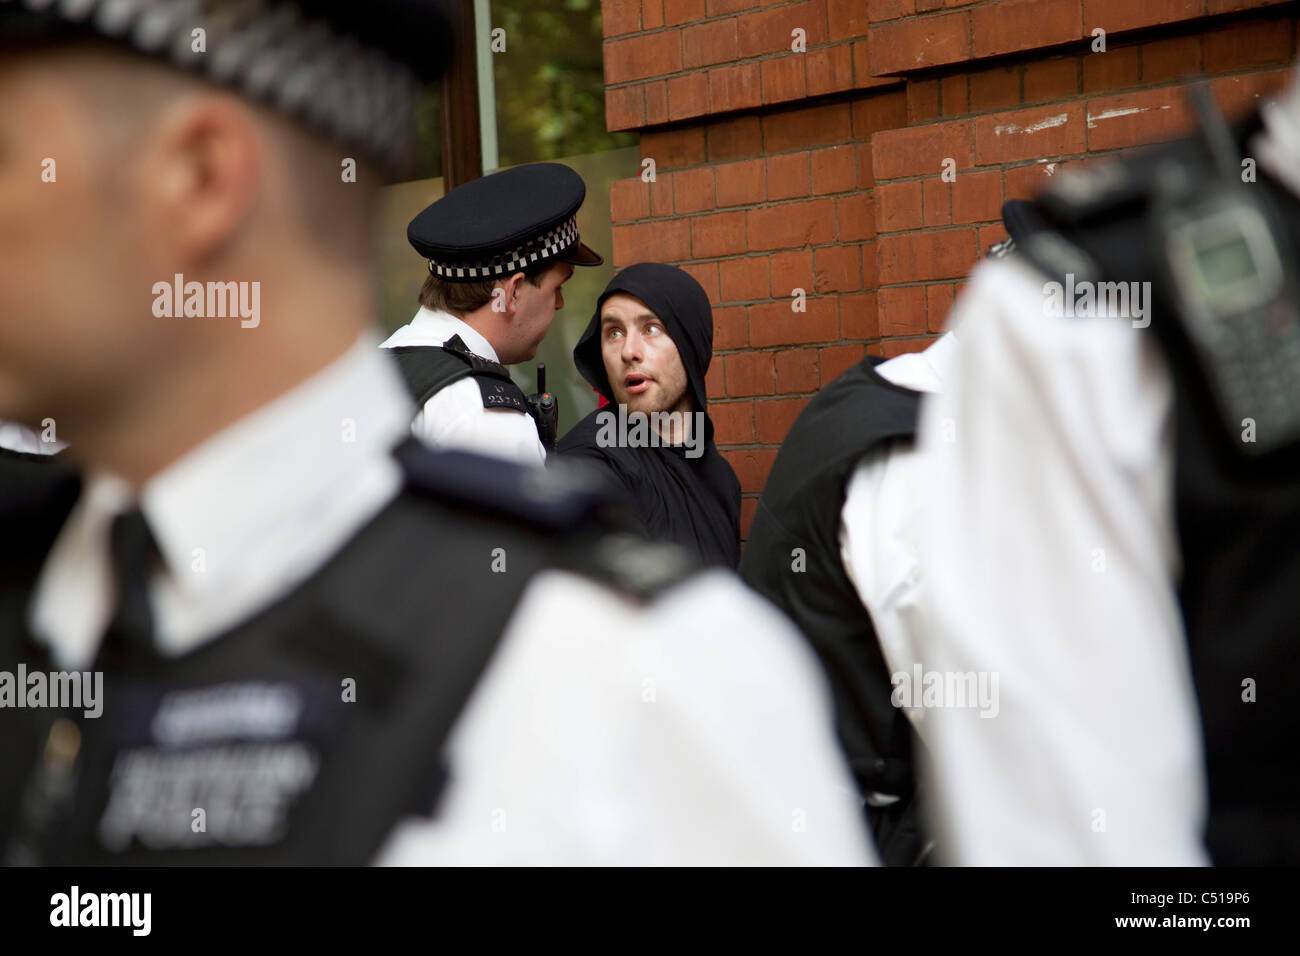 Police using their powers of stop and search during the general strike march in central London. - Stock Image